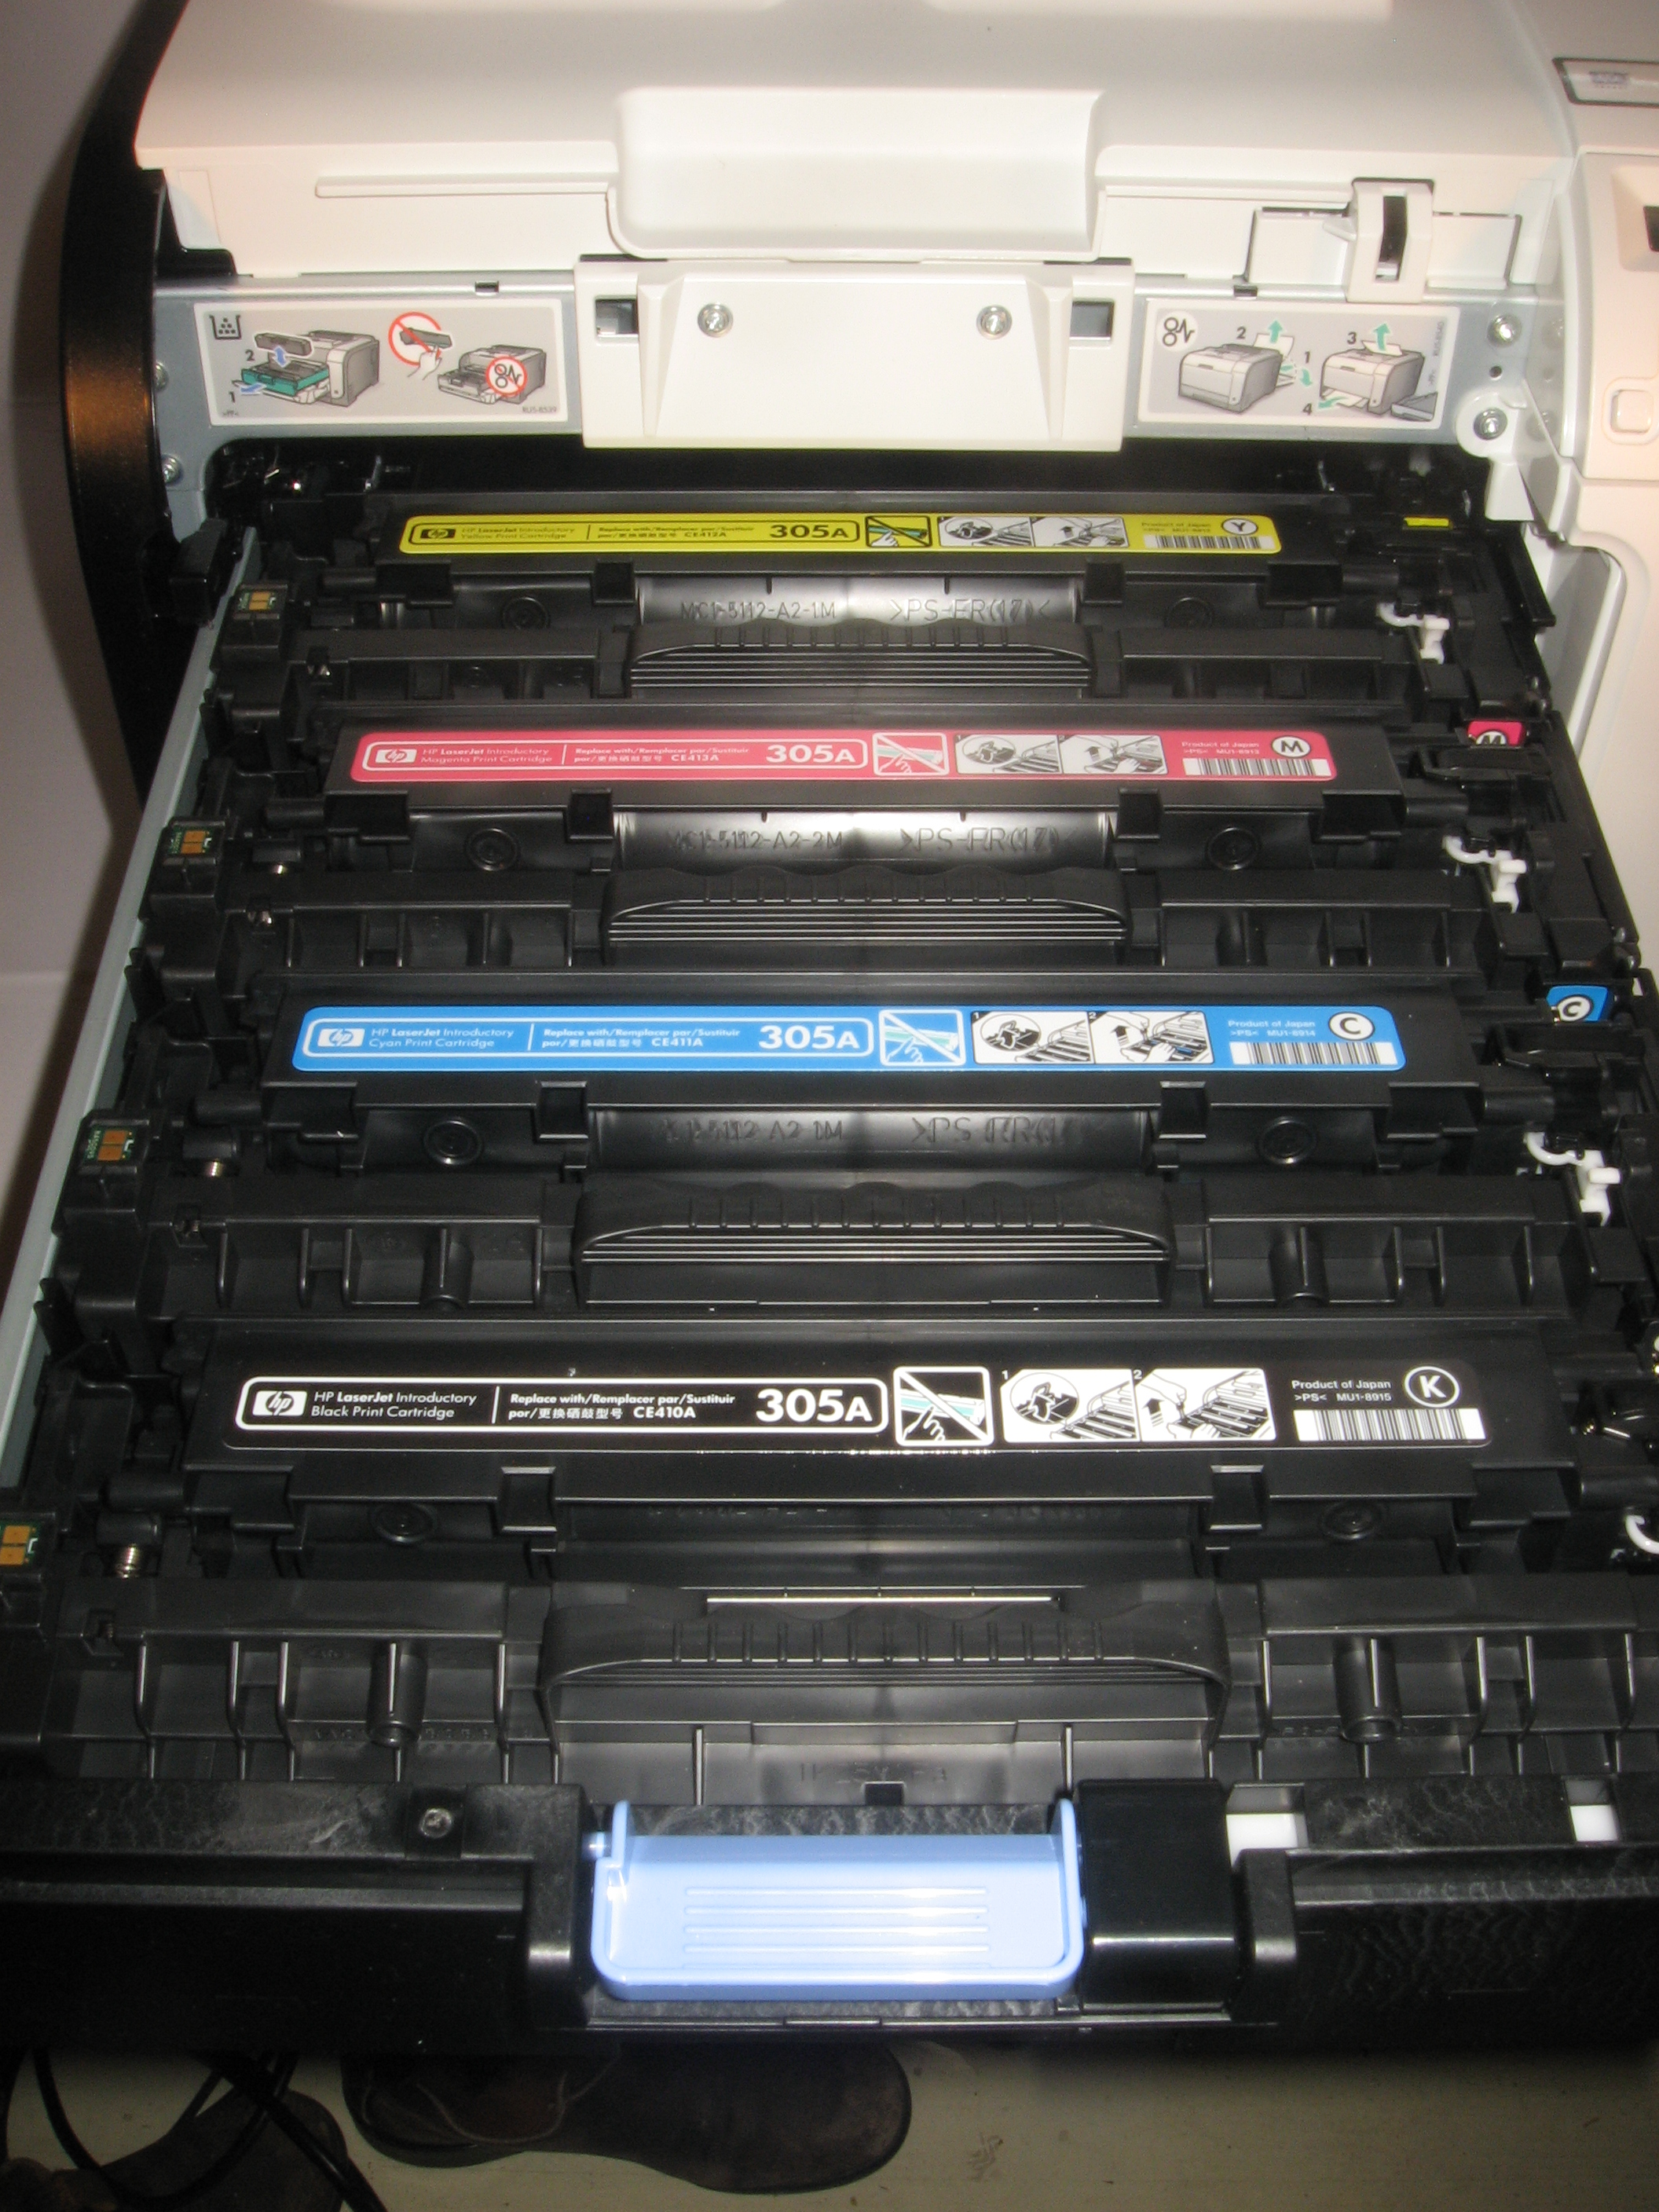 HP LaserJet Pro 400 Series toner cartridges